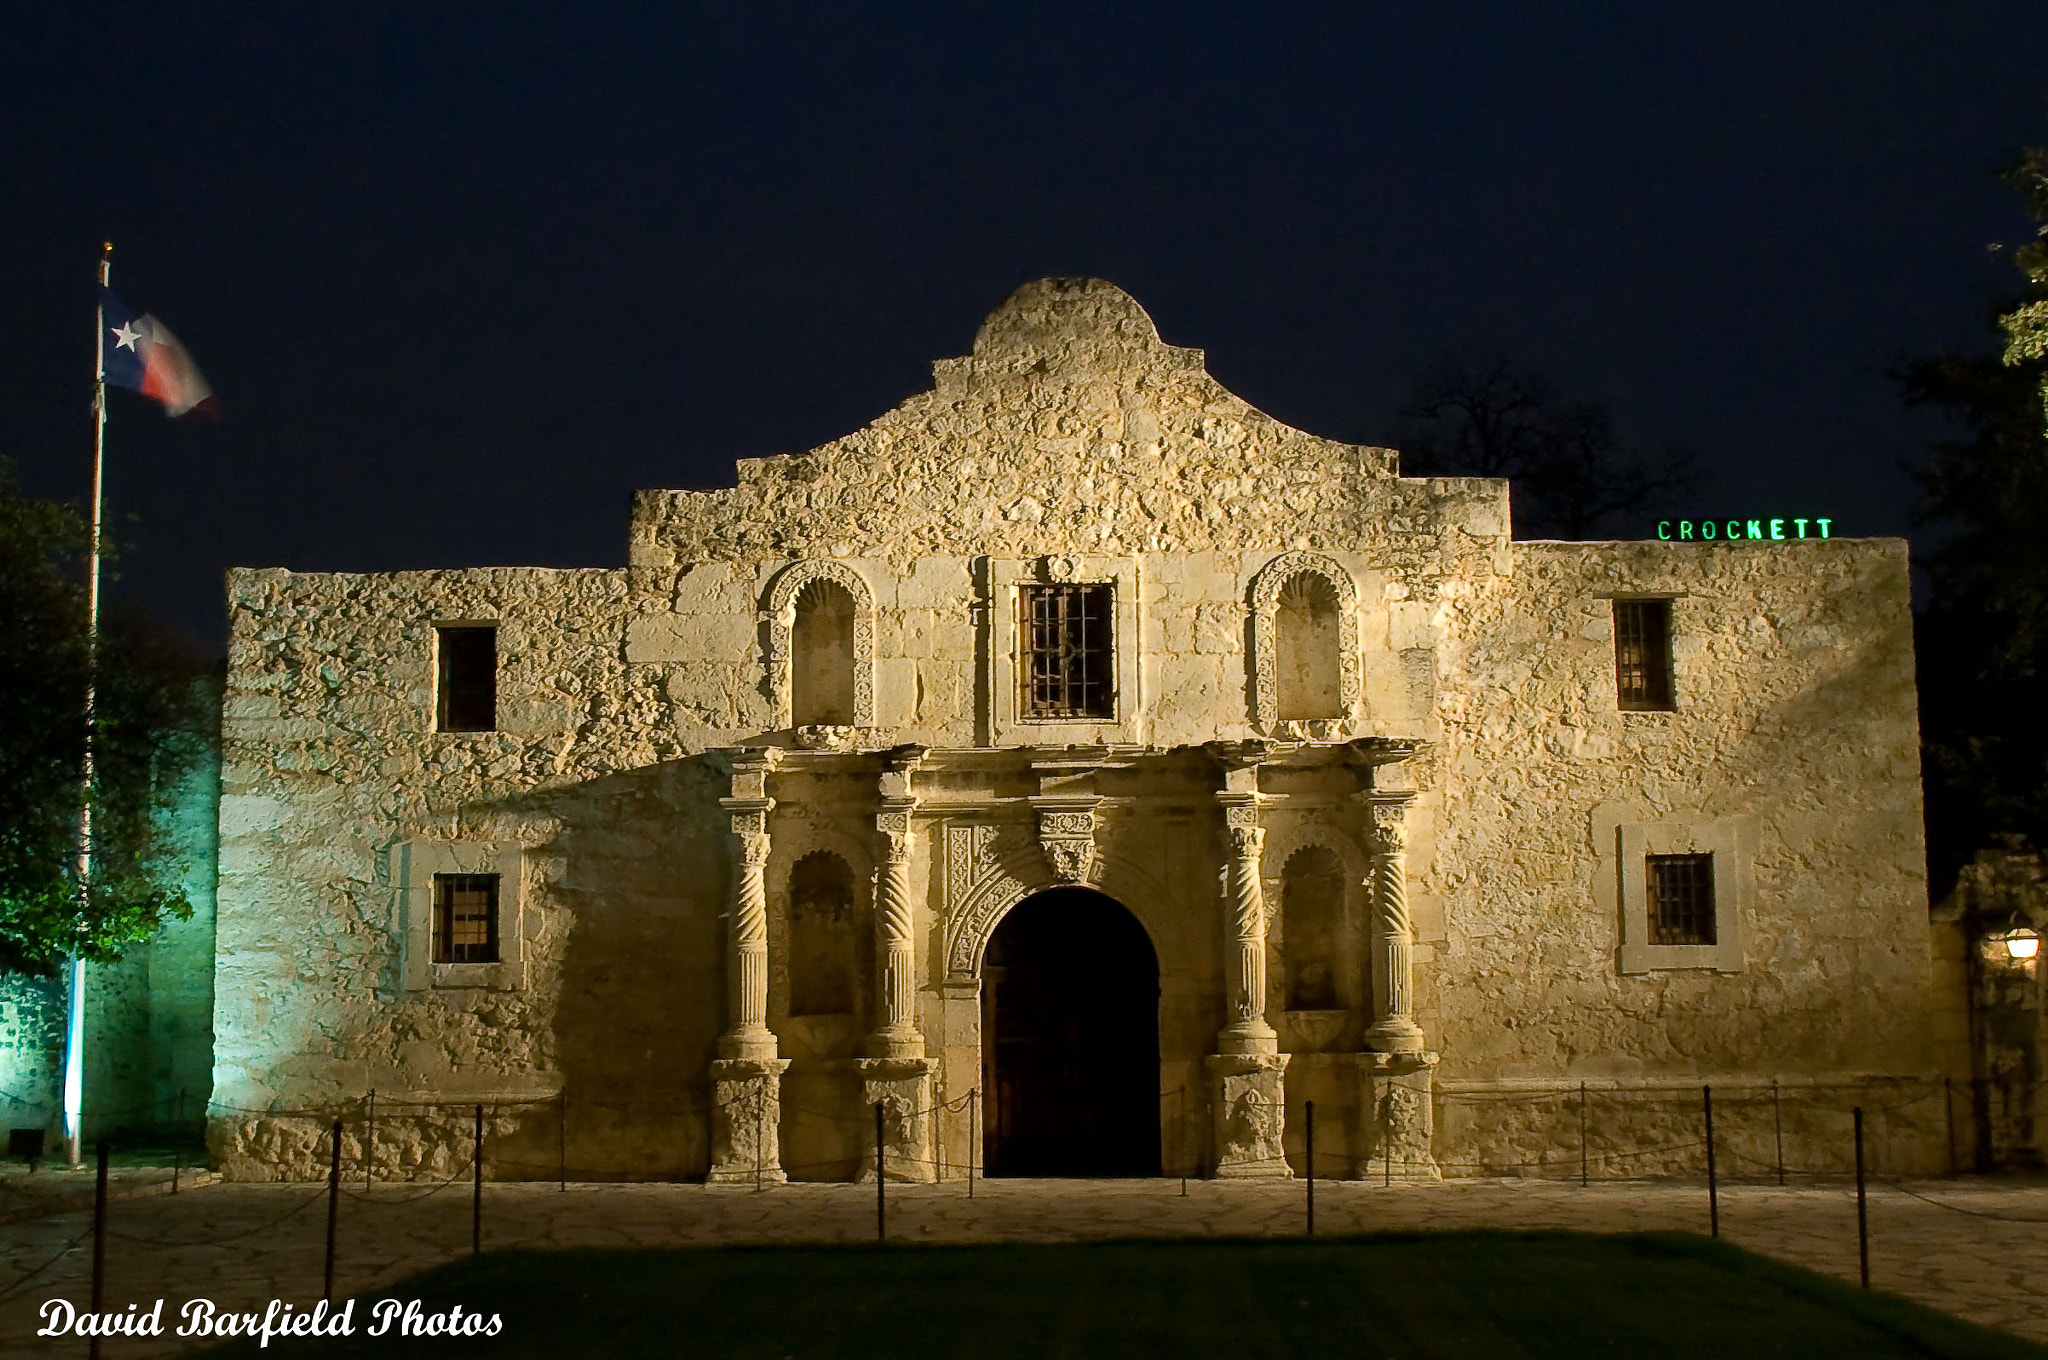 Photograph Alamo at Night by David Barfield on 500px